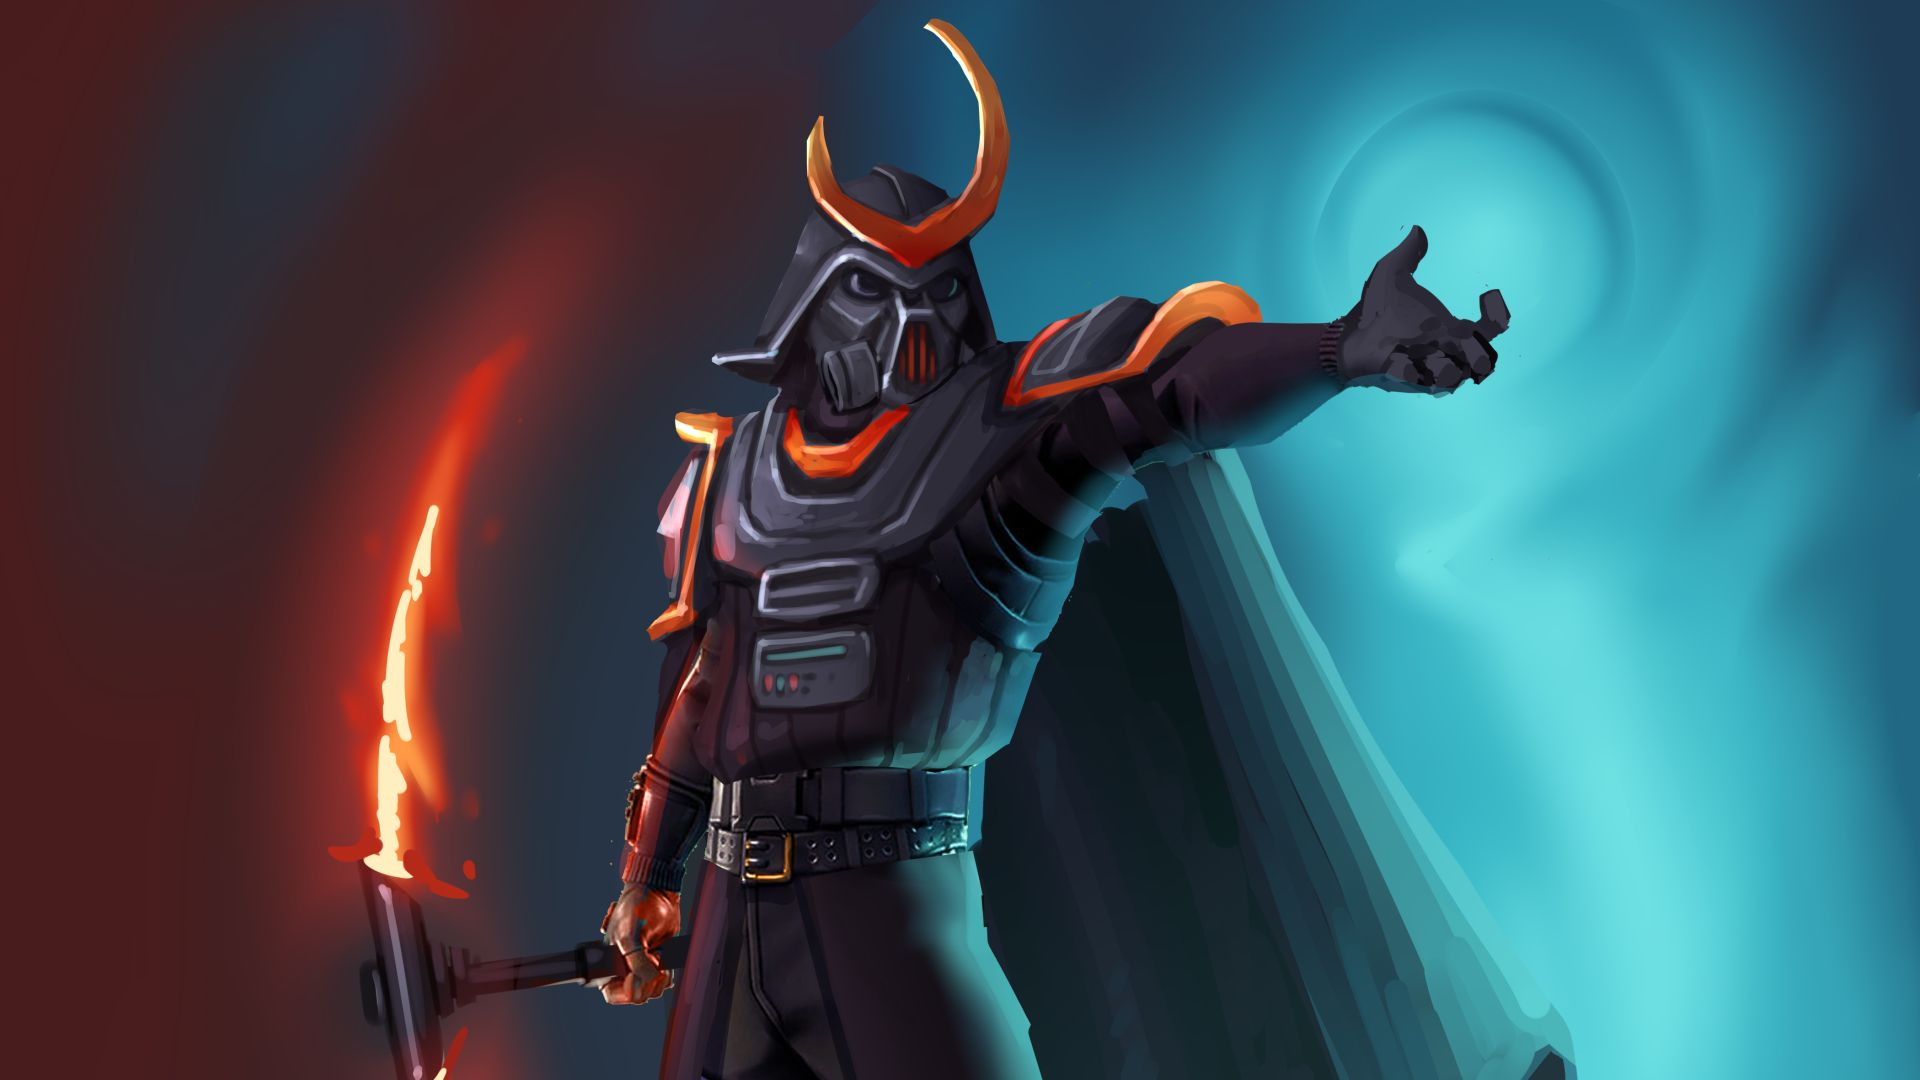 Cool Fortnite Wallpapers Top Free Cool Fortnite Backgrounds Wallpaperaccess